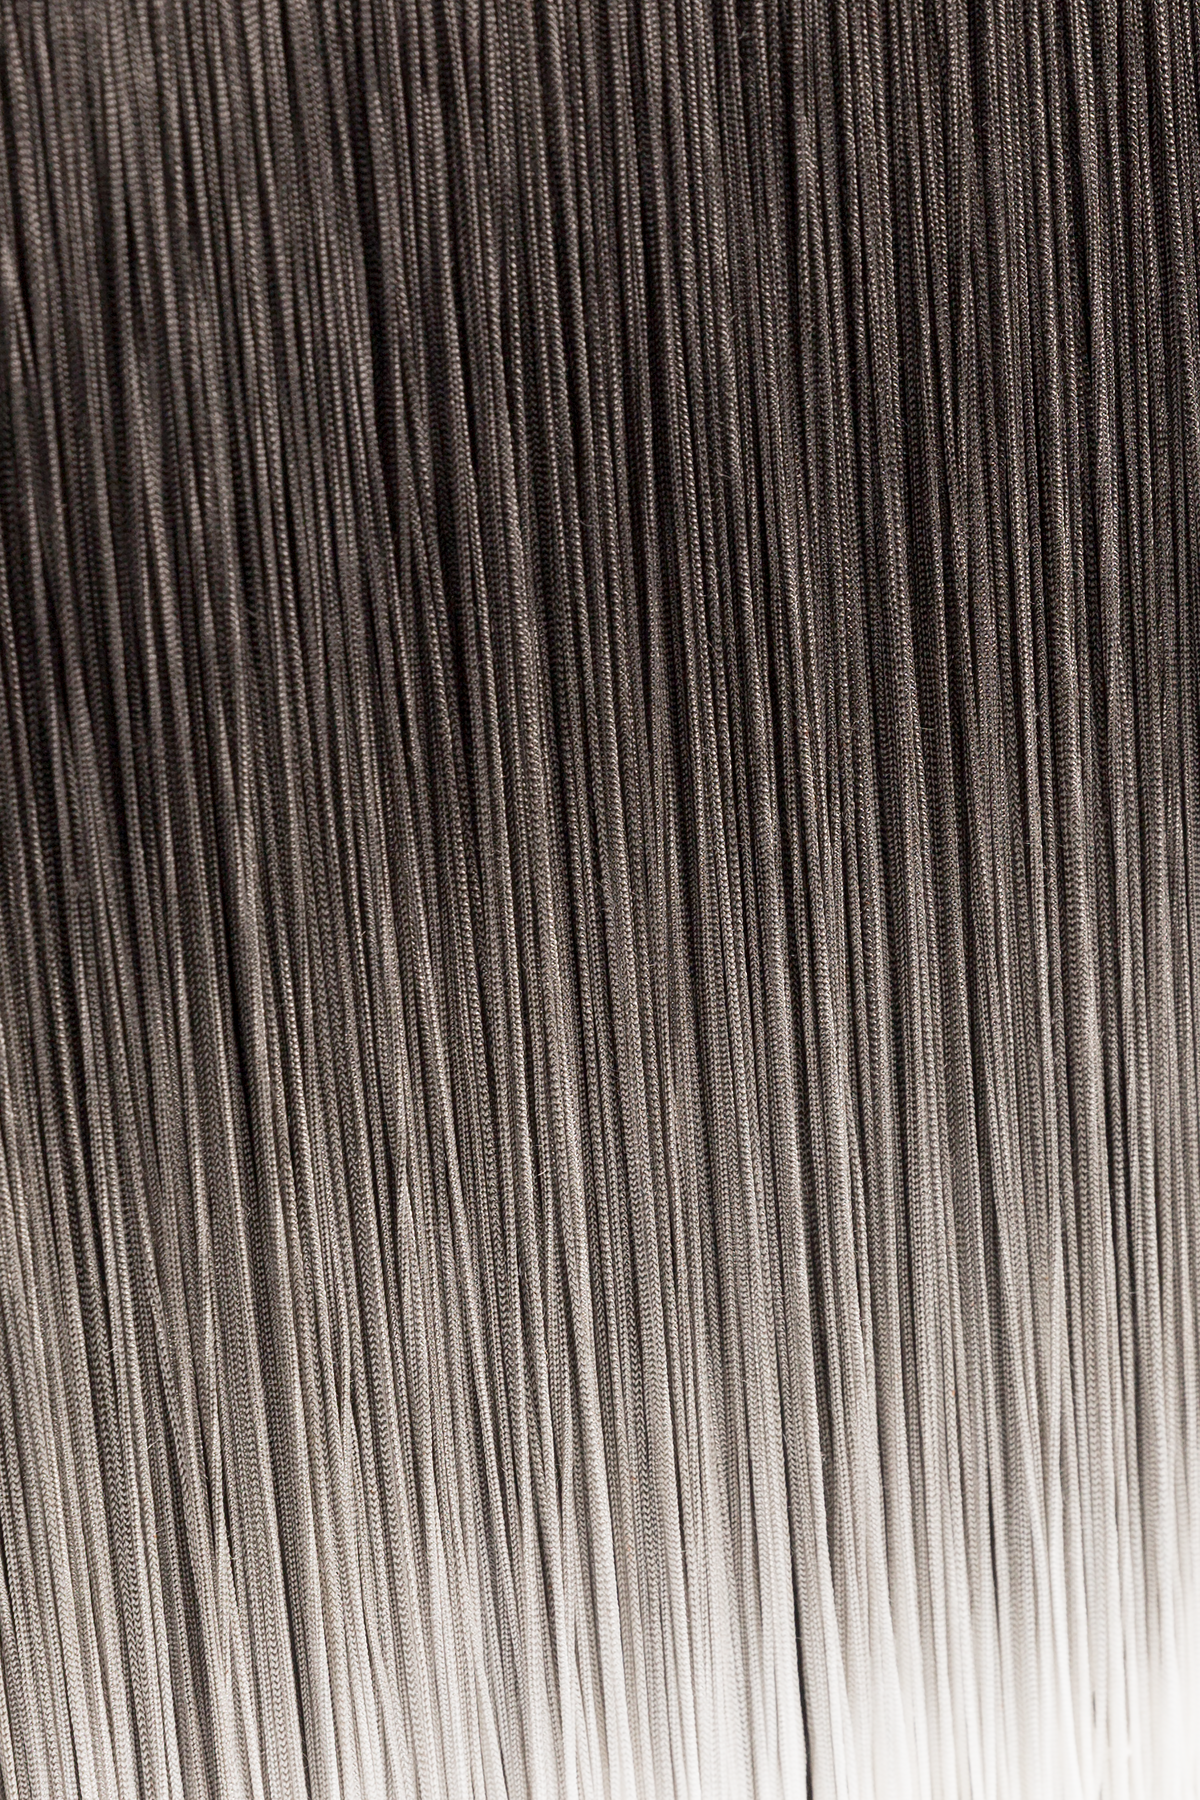 Detail of the threads from Amami sofa